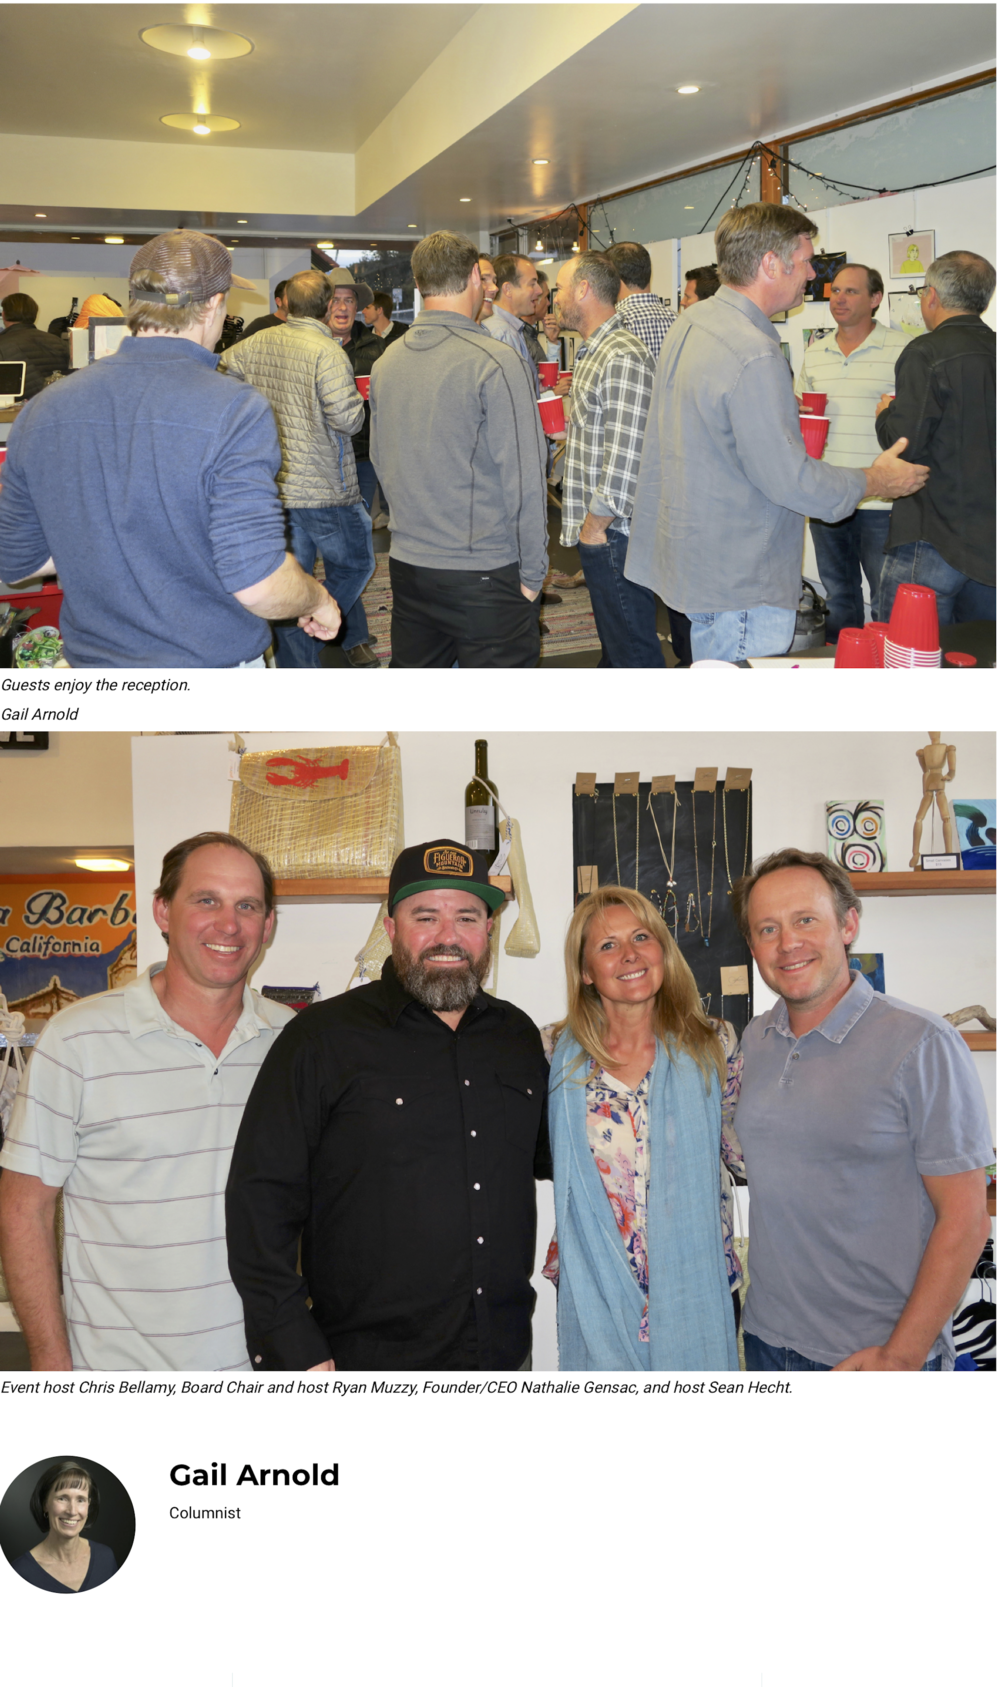 Entrepreneurs Support Youth Interactive – The Santa Barbara Independent (dragged) 3.png